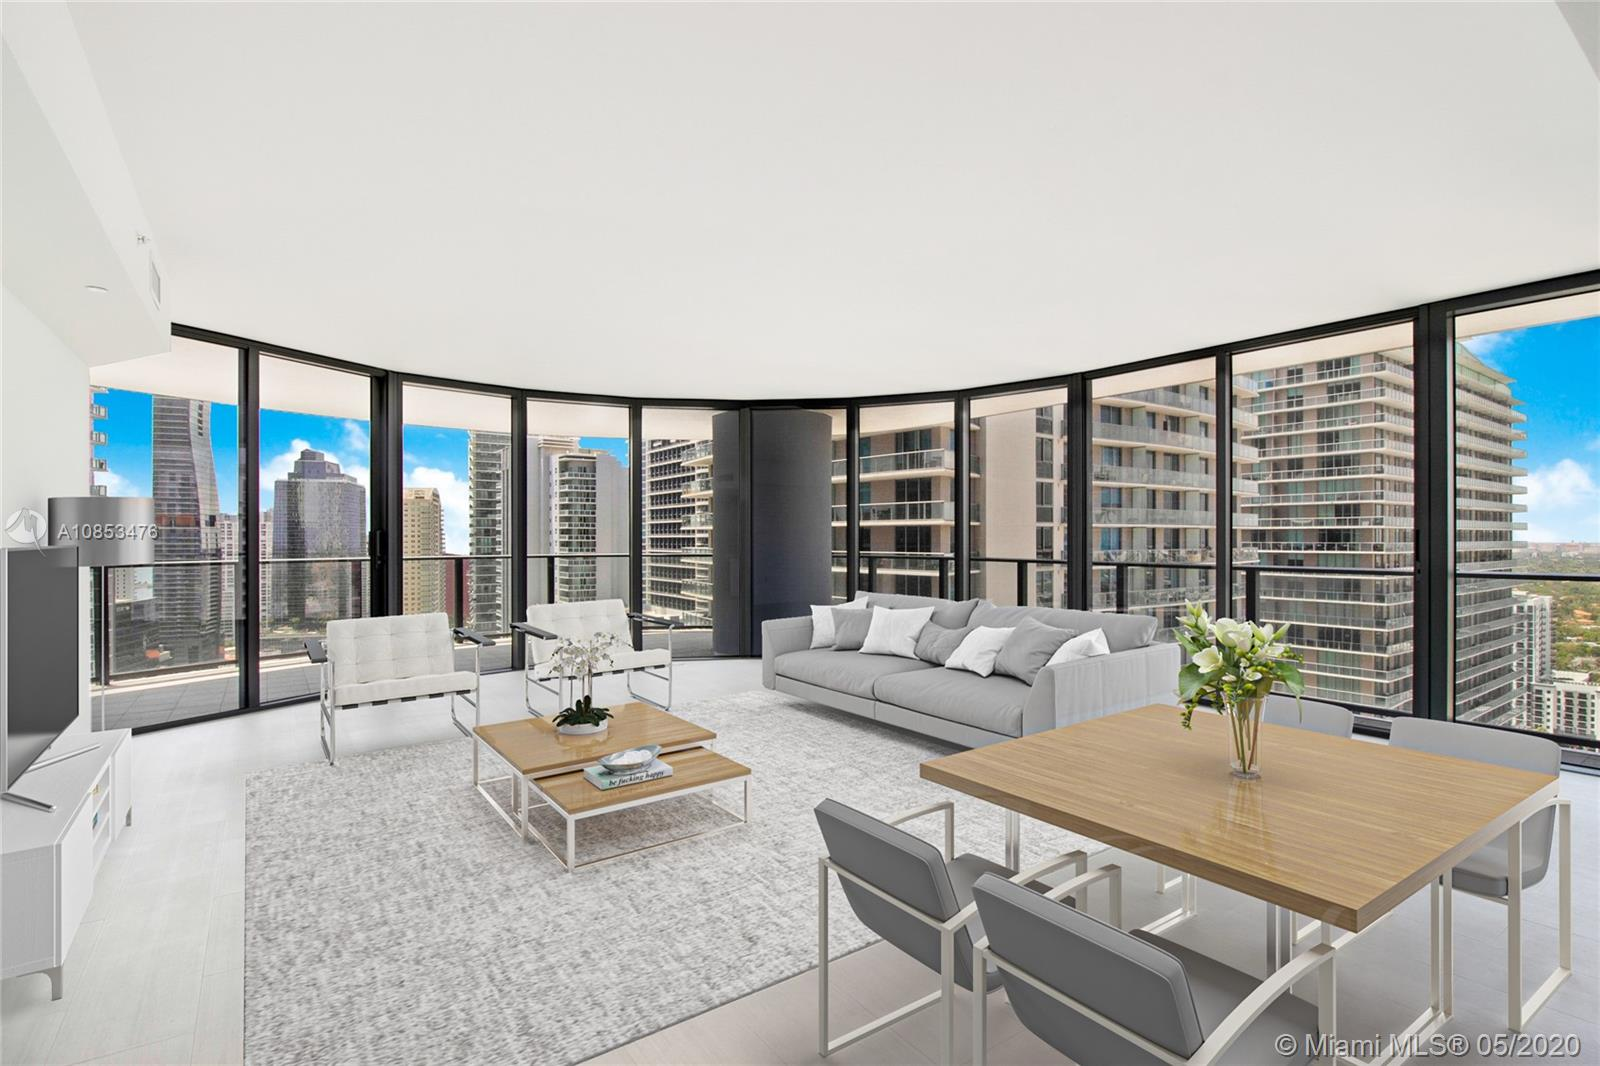 Situated in the heart of downtown Brickell, luxury living and superb location define this 3 BR, 3.5 BA residence. Positioned in best 02 line, this corner apt showcases the largest floor plan of the tower residences @2,025 SF, and huge wrap-around balcony delivers lavish sunset & city views. Interior features floor-to-ceiling windows, Italian marble, Snaidero kitchen & Miele appliances. Premium perks include rooftop Sky Club on 64th floor, which integrates a pool w/ 360° unobstructed water & skyline views, a spa & fitness center. Flatiron Club @ 17th & 18th floors offers movie theater, lap pool, kid's playroom, lounge & billiards room. Full-time doorman, concierge & 24-hr valet. Super location brims w/ steps-away shopping, dining & Brickell City Centre. 3 parking spaces & private storage.